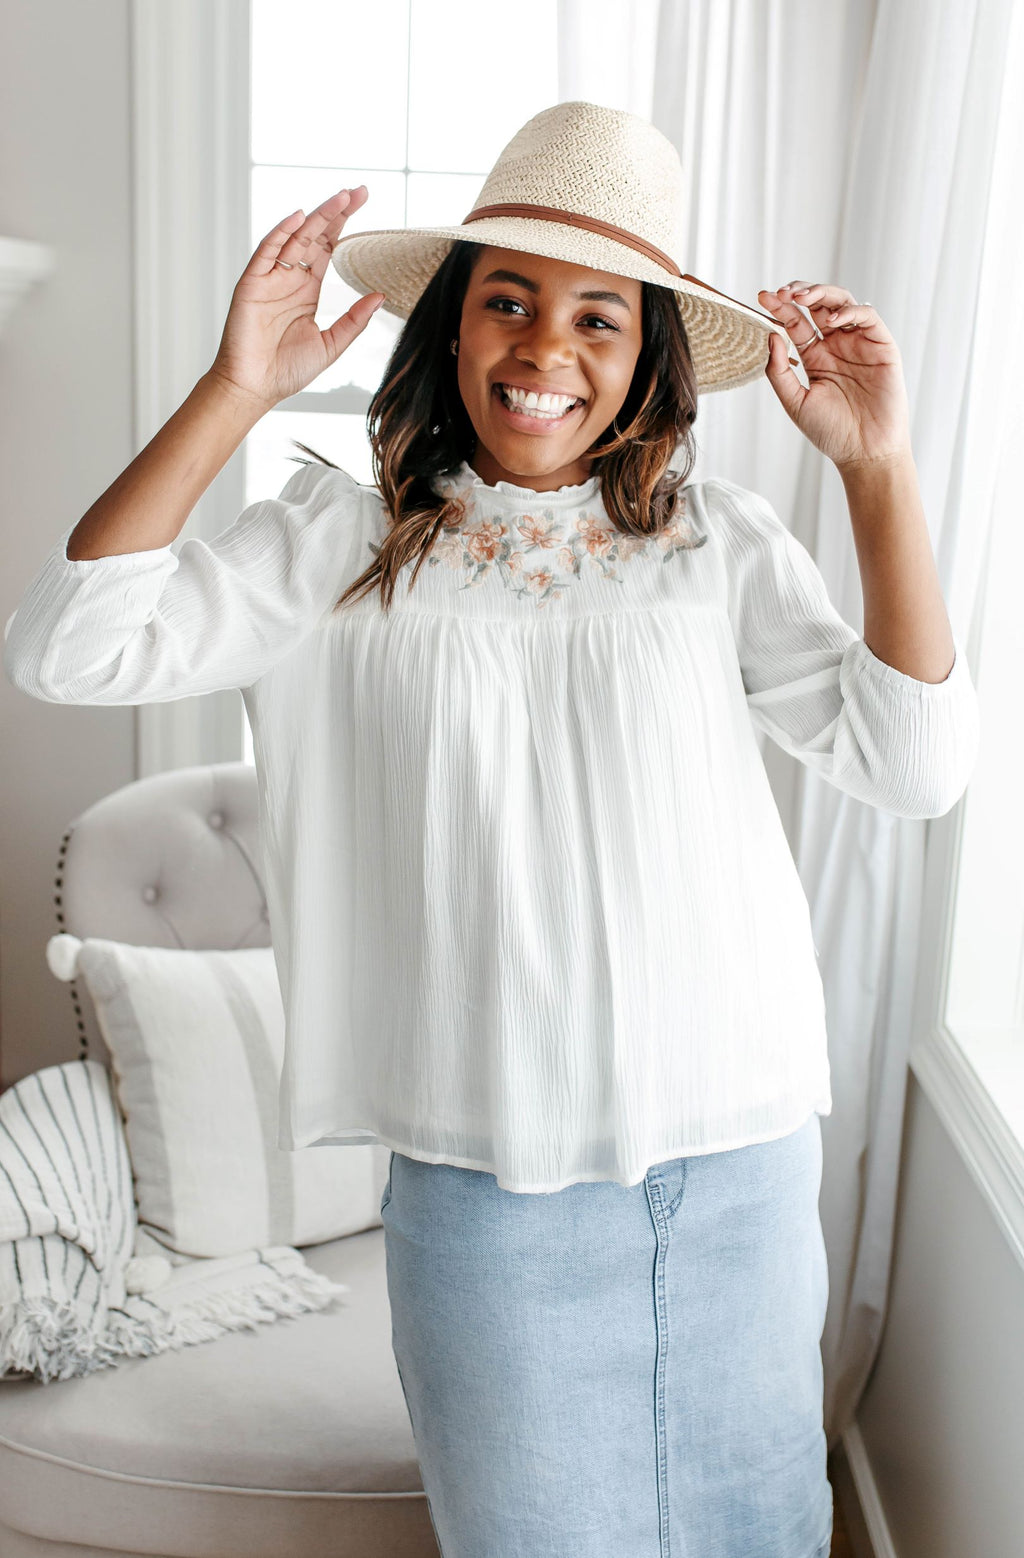 'Gabrielle' Embroidered Yoke Top in Ivory